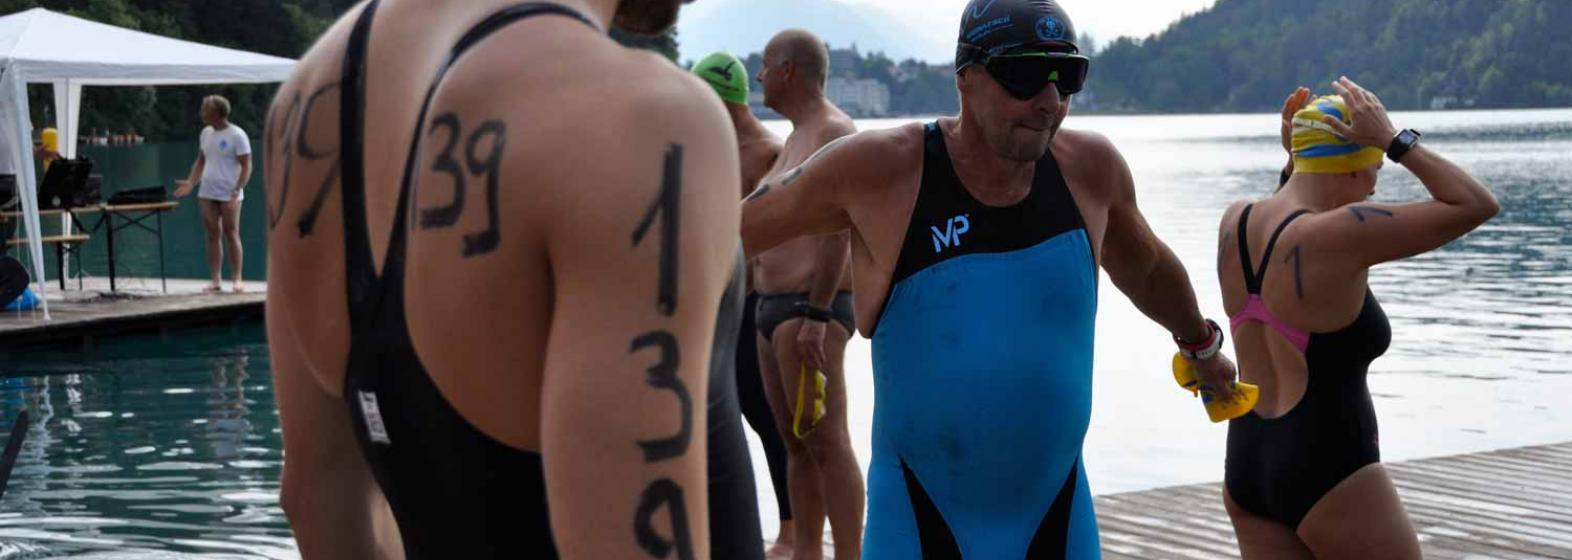 Bled Swimming Challenge 2018 04